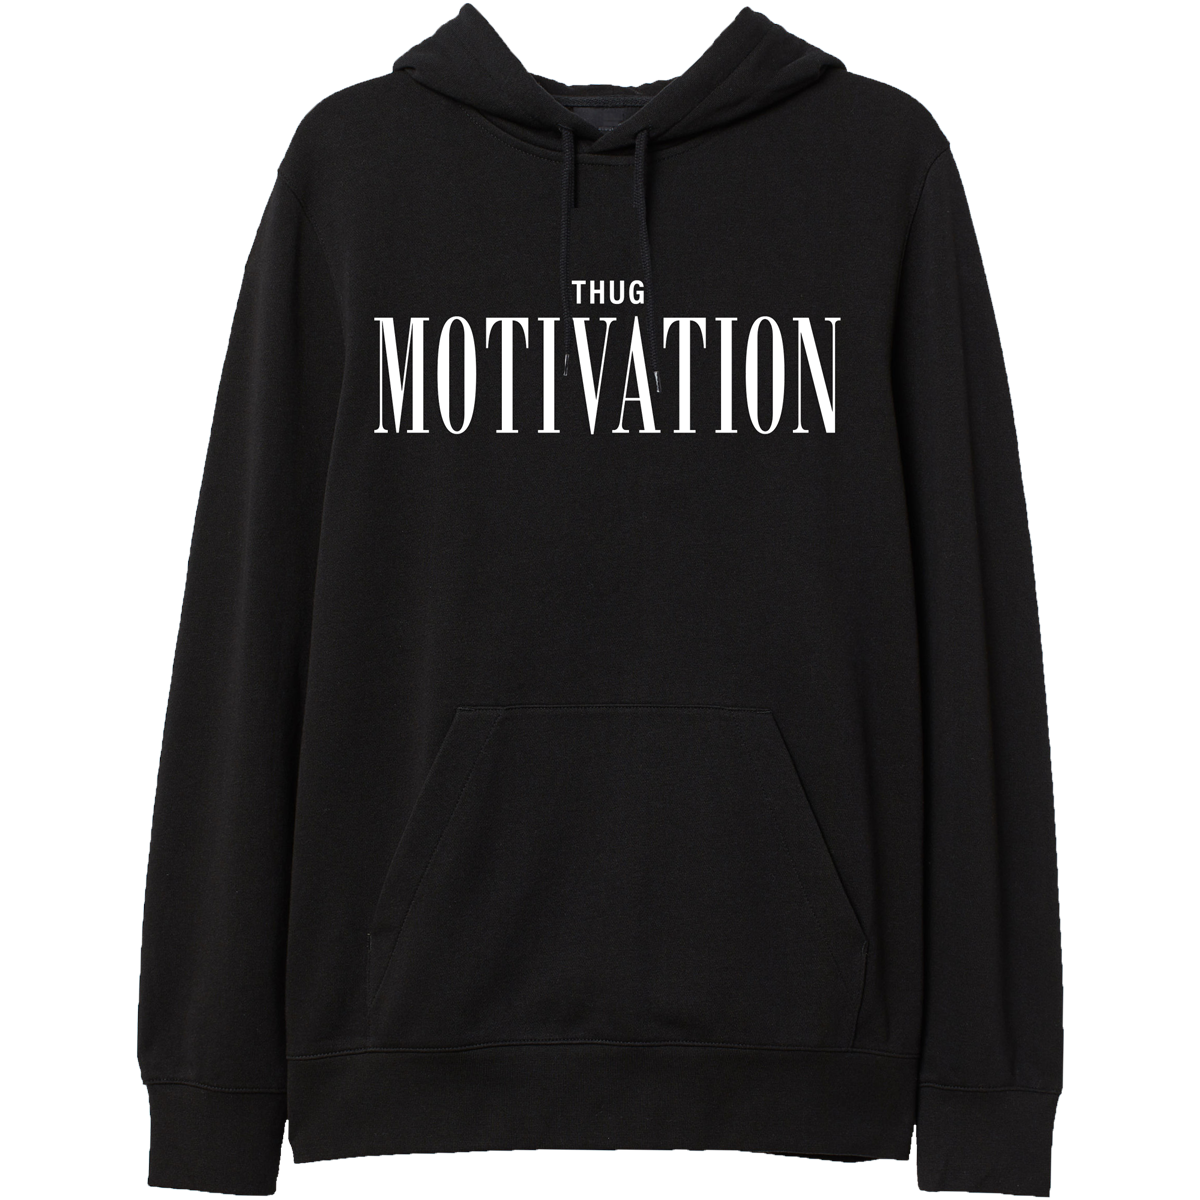 Thug Motivation Hoodie & TM104 Digital Download